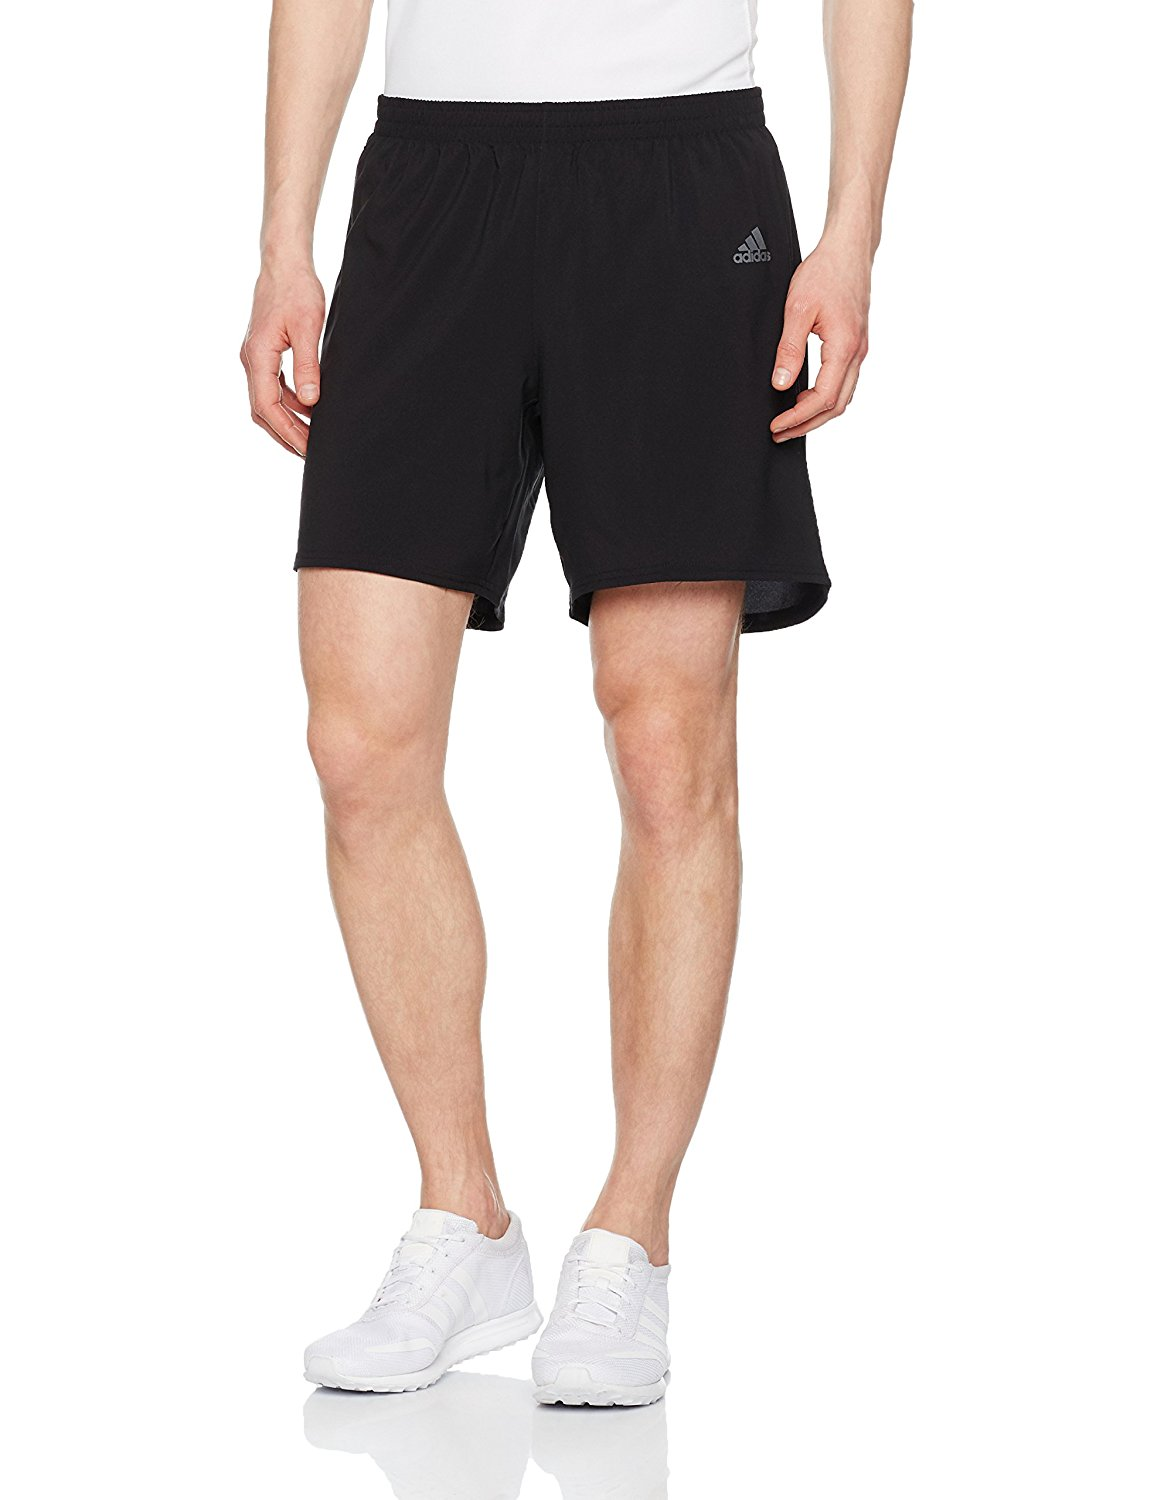 adidas herren shorts response kurze hose ebay. Black Bedroom Furniture Sets. Home Design Ideas